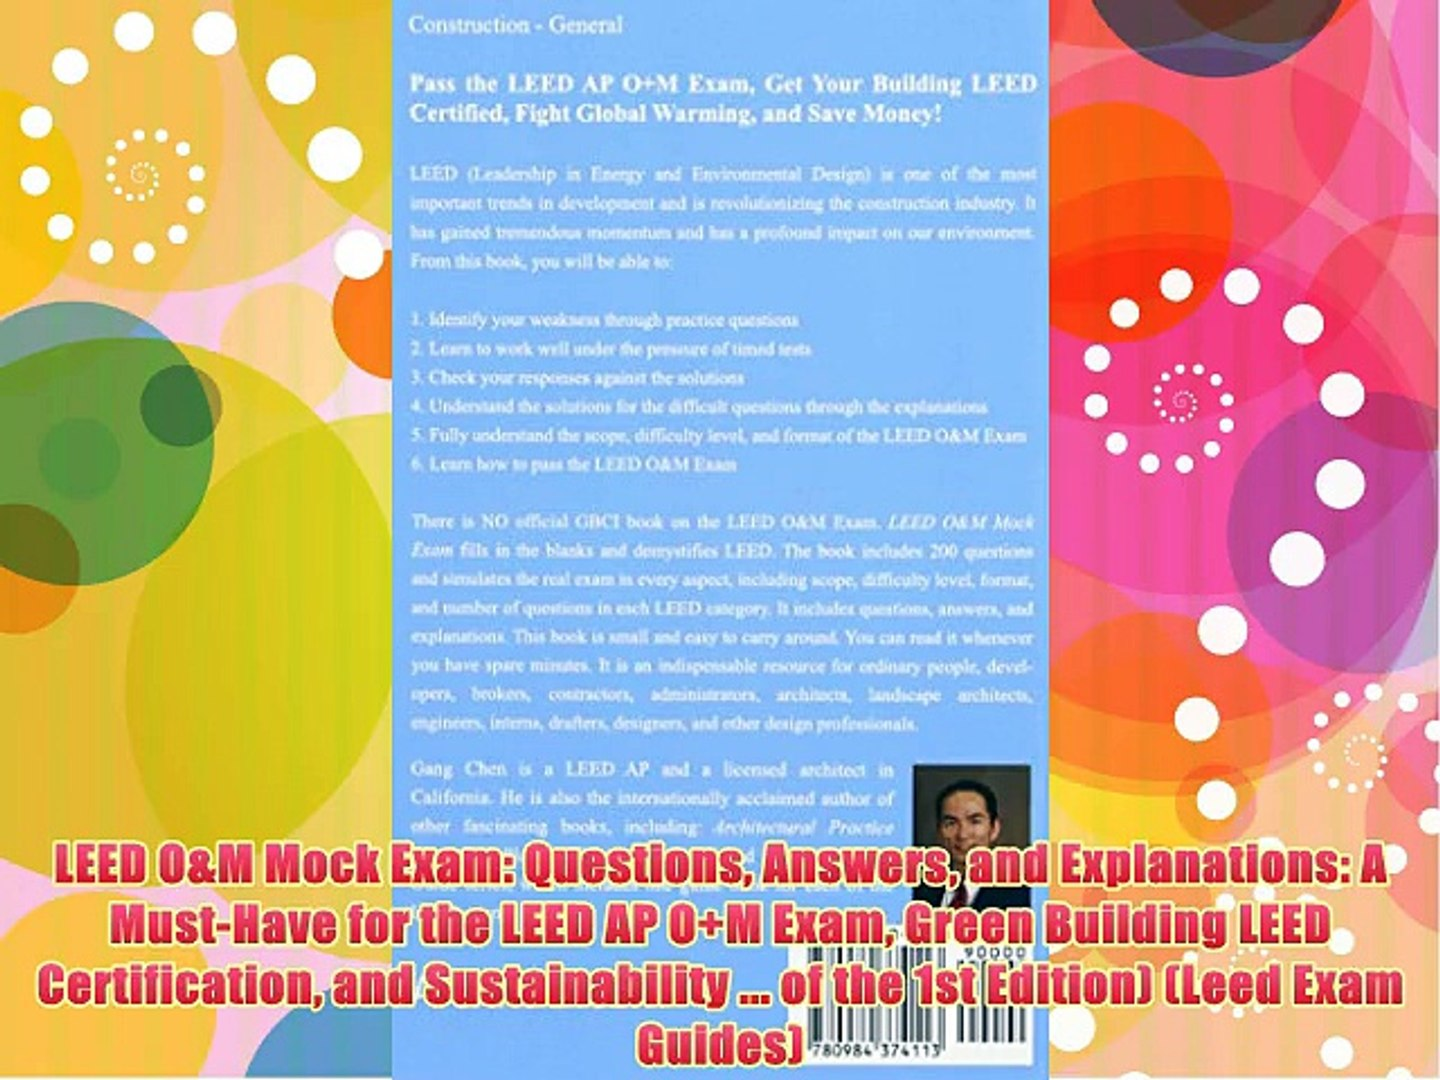 LEED O&M Mock Exam: Questions Answers and Explanations: A Must-Have for the  LEED AP O+M Exam